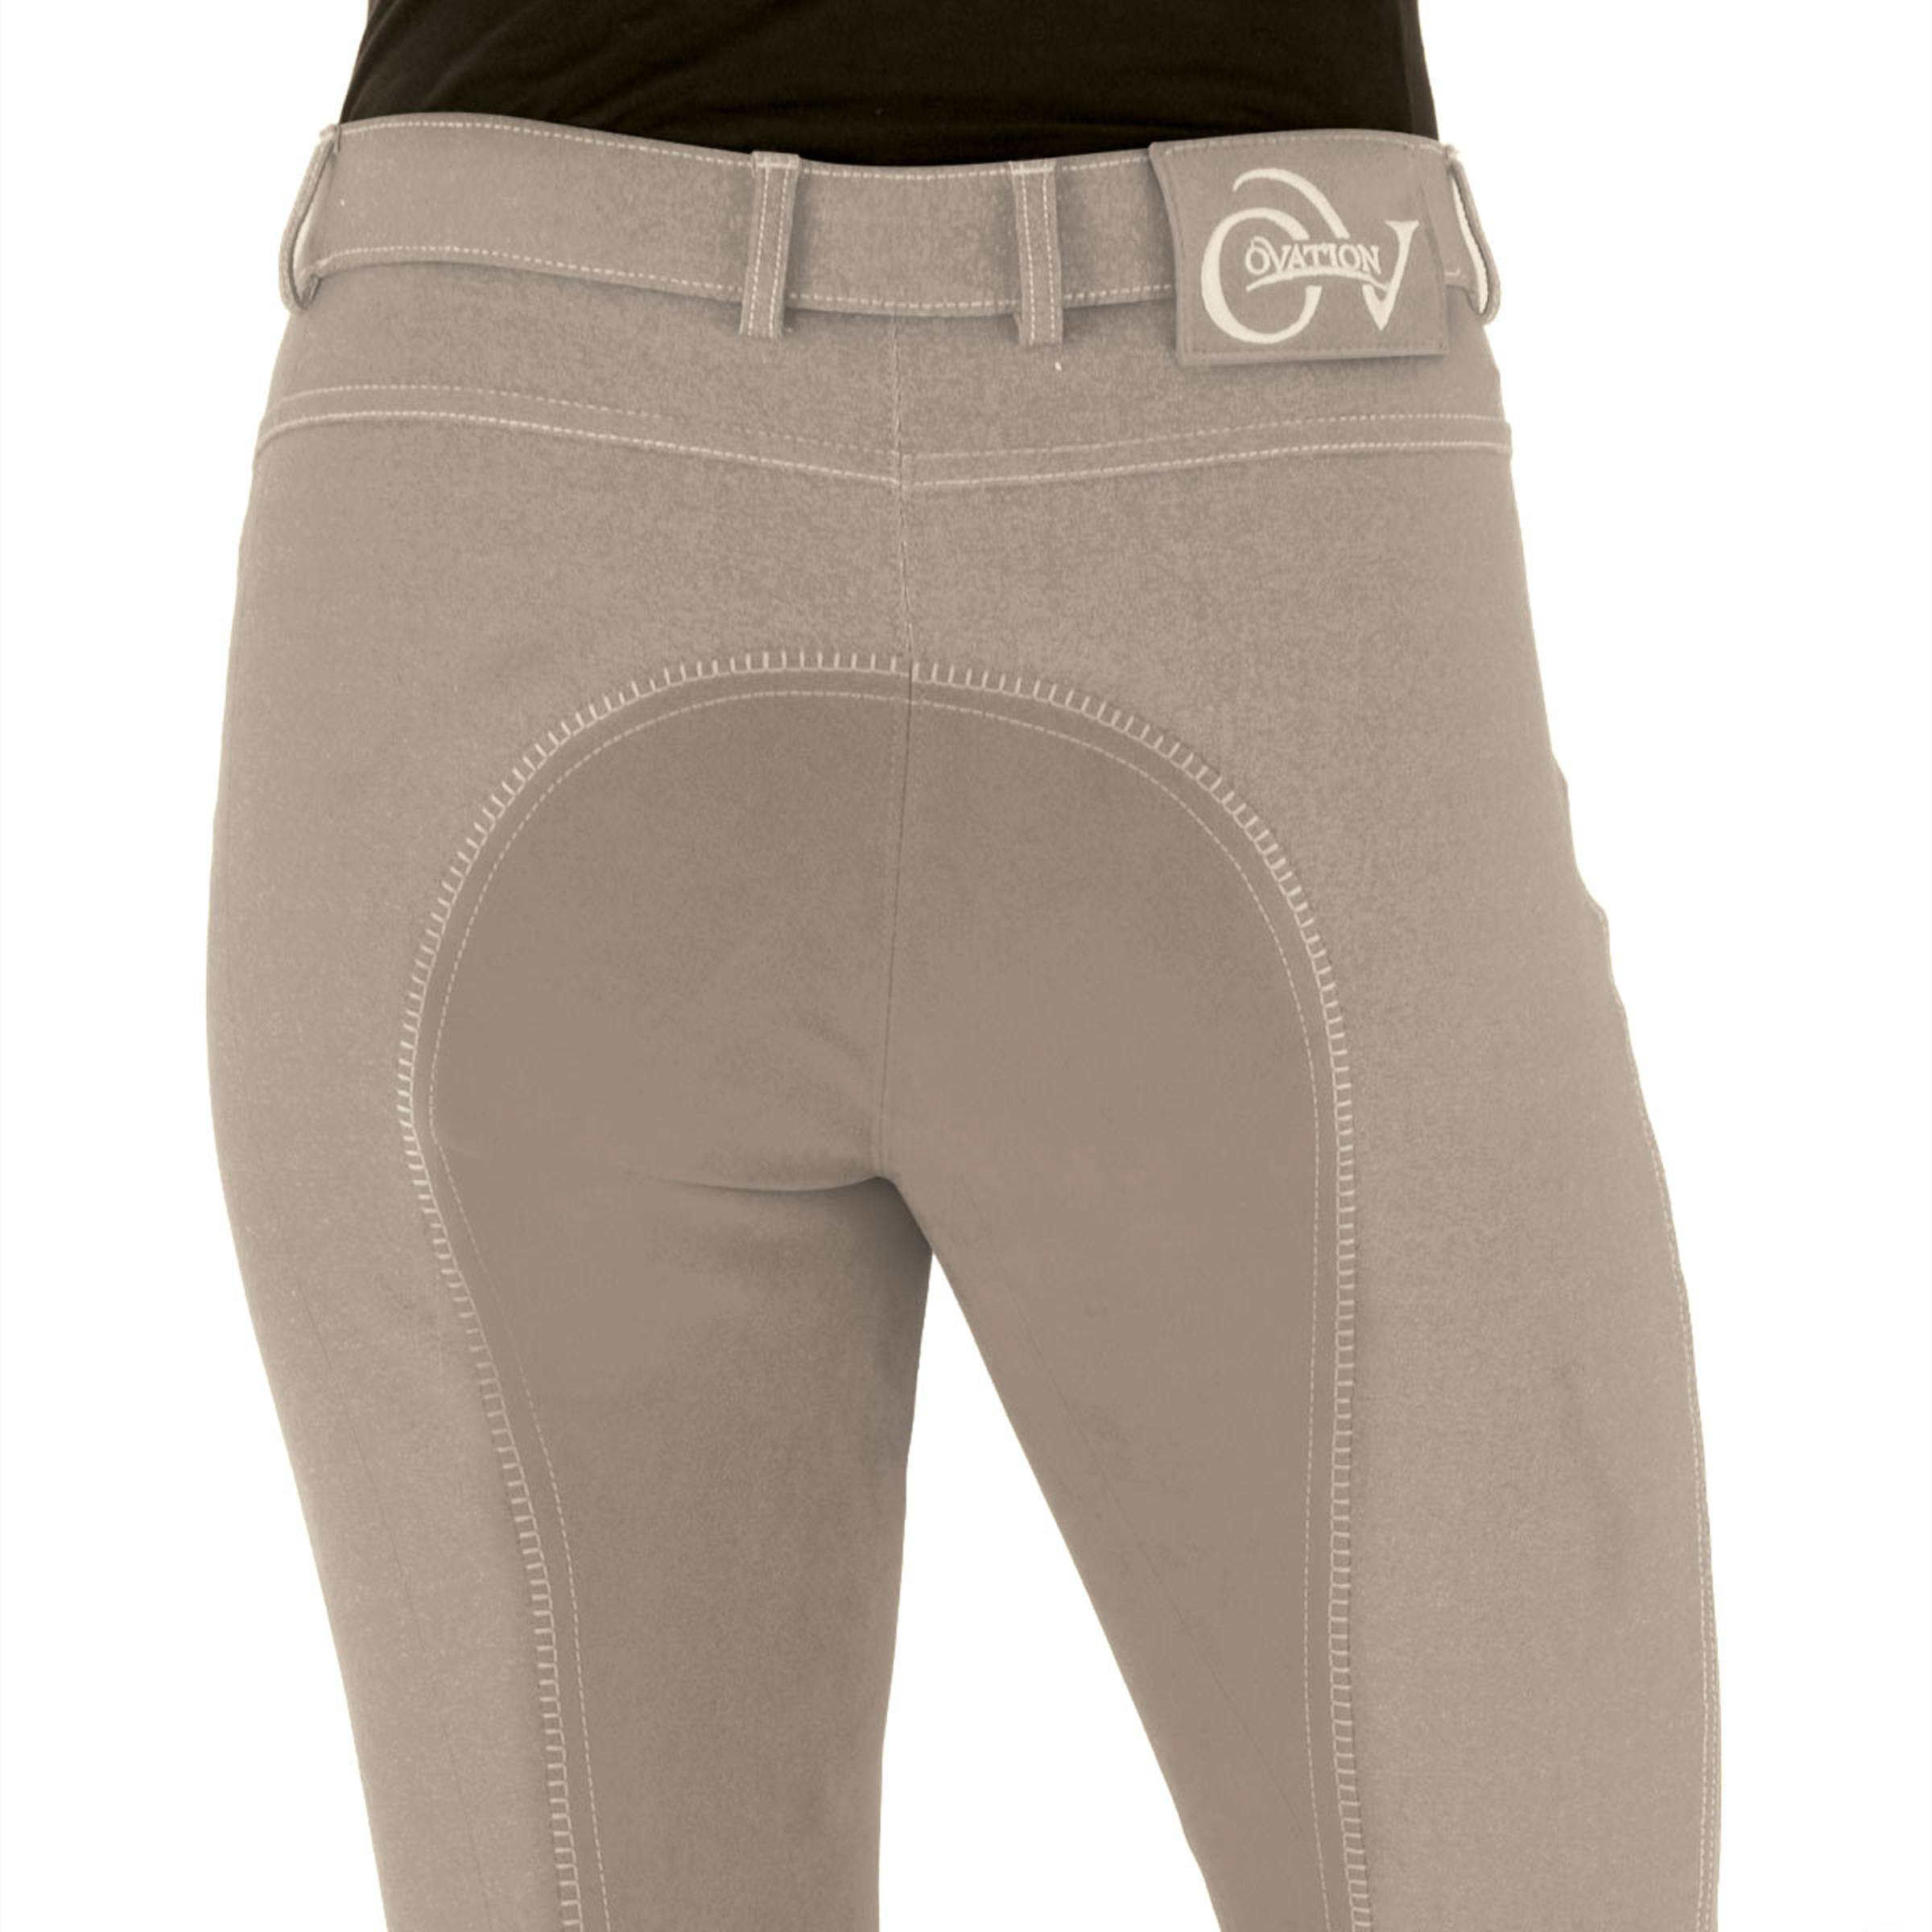 Ovation Ladies' Euro Jean Front Zip Full Seat Breeches